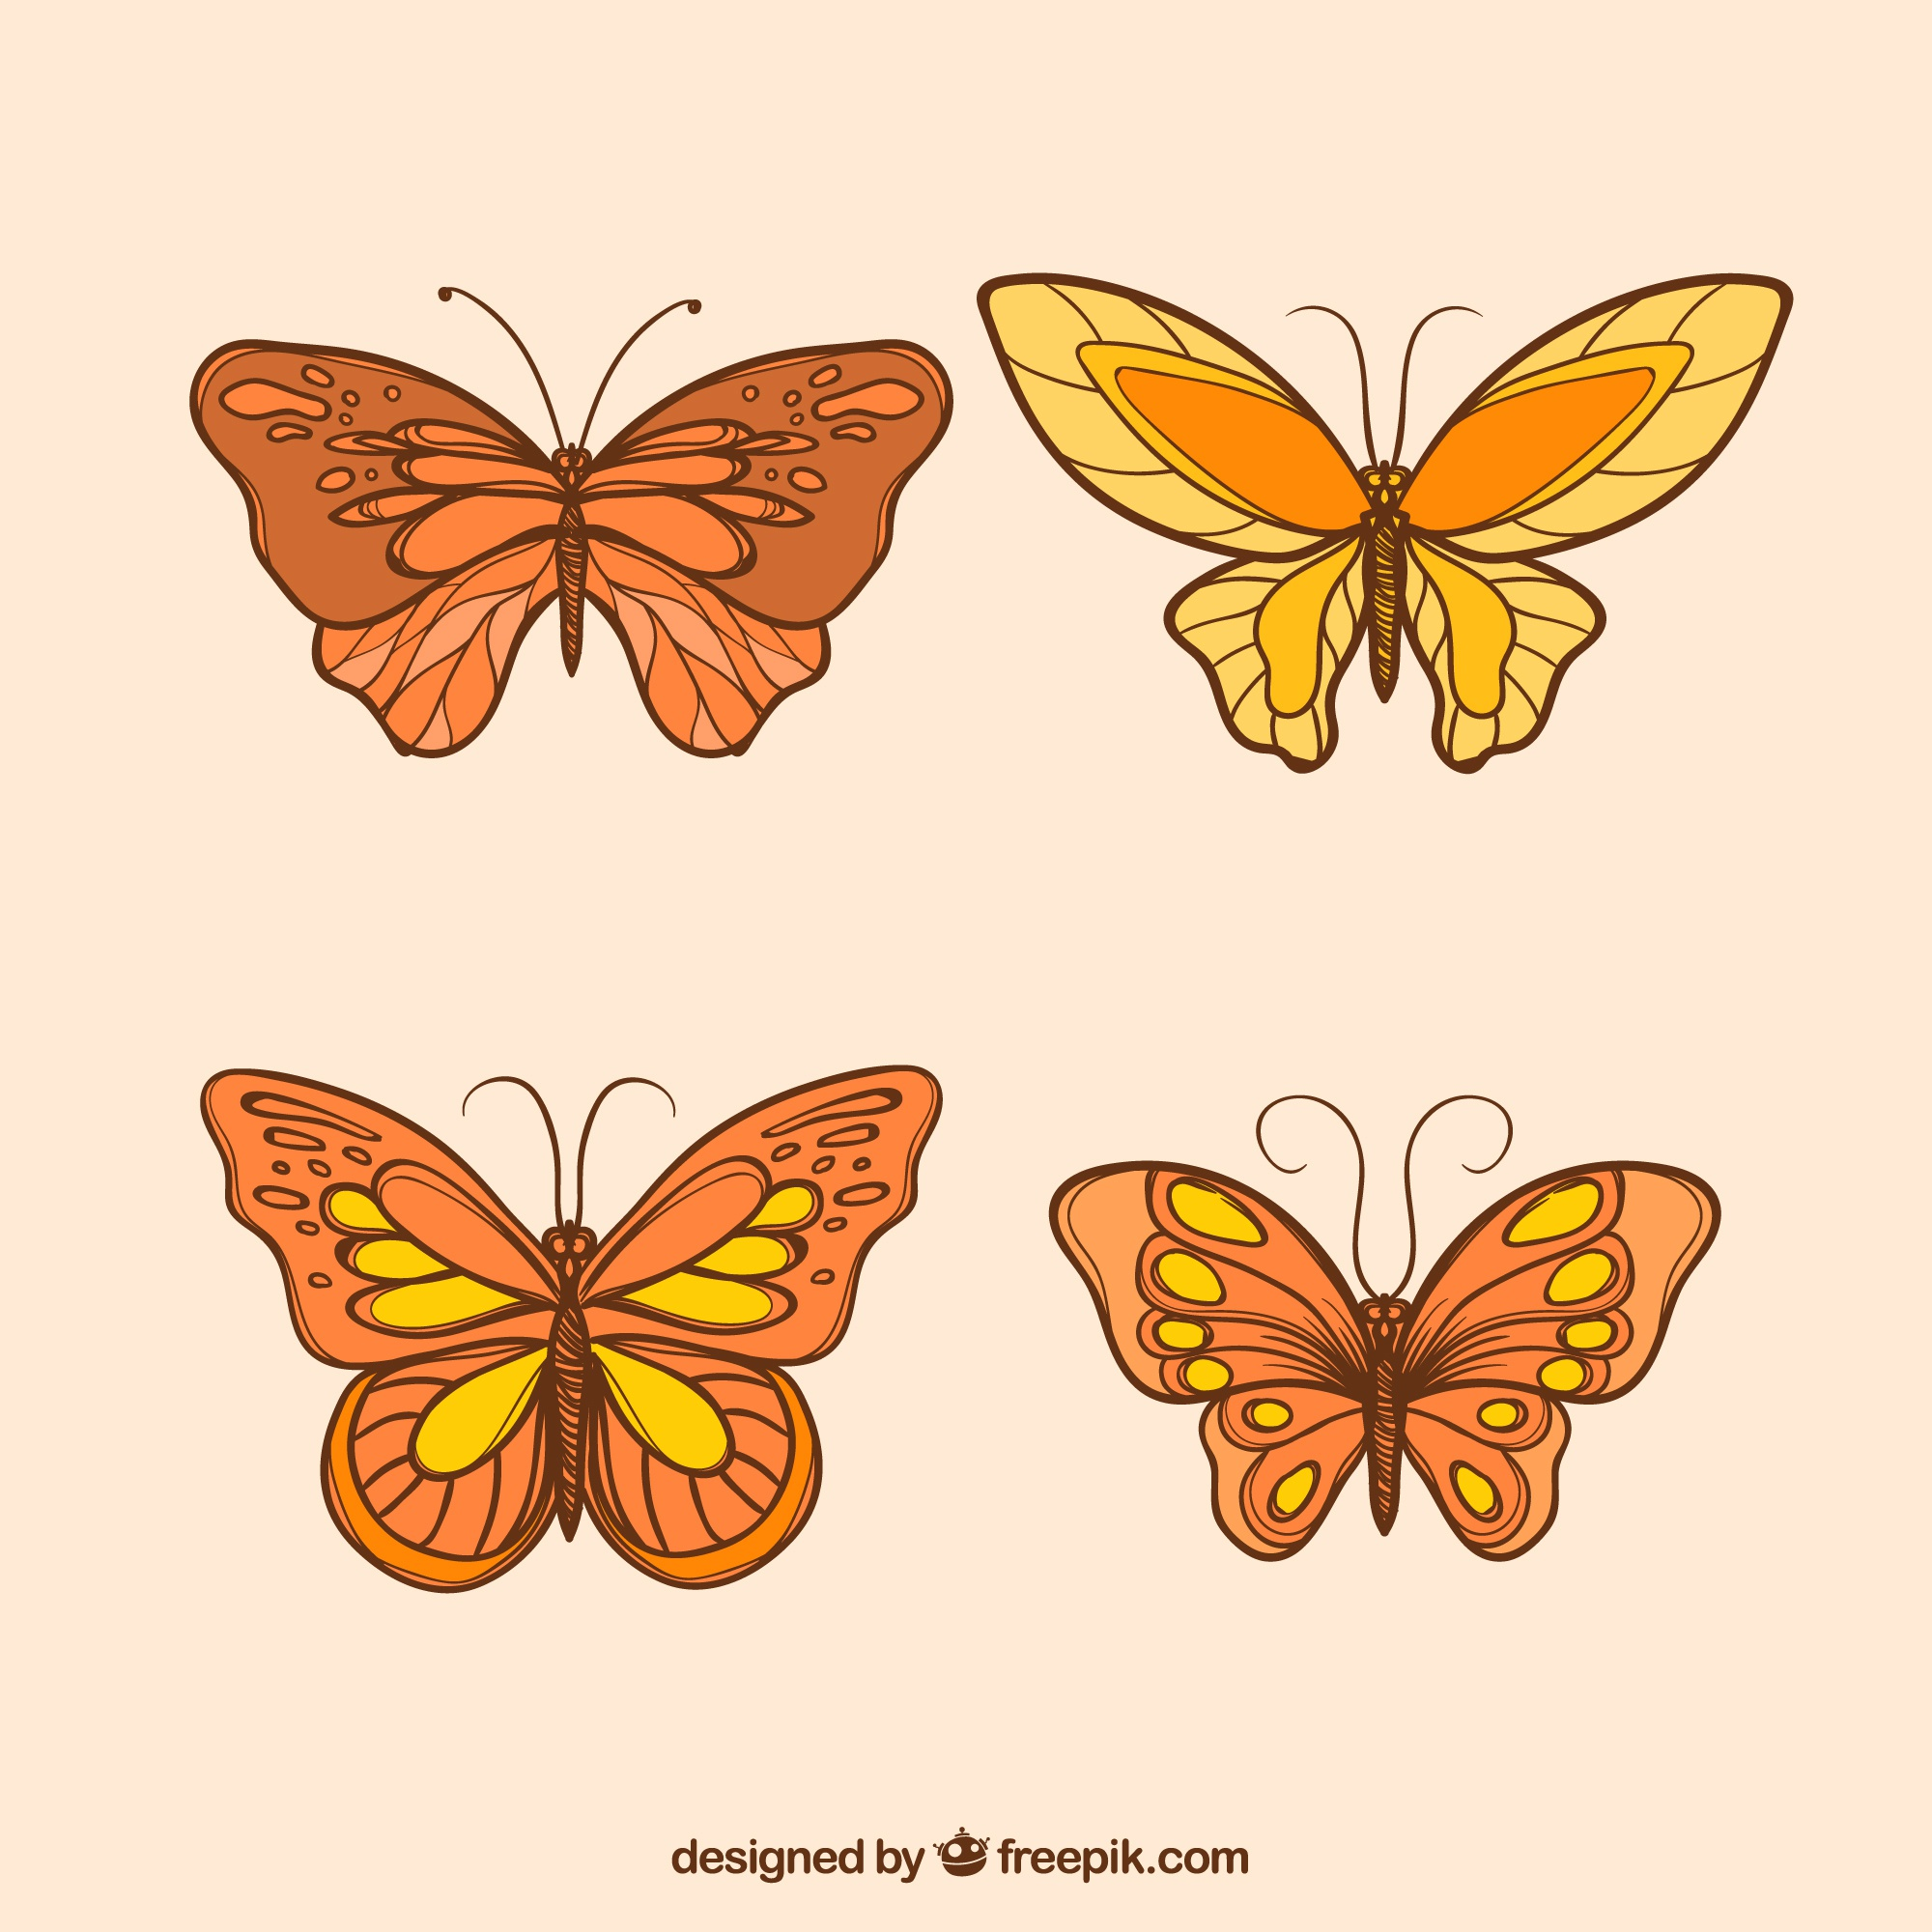 Decorative butterflies with different designs